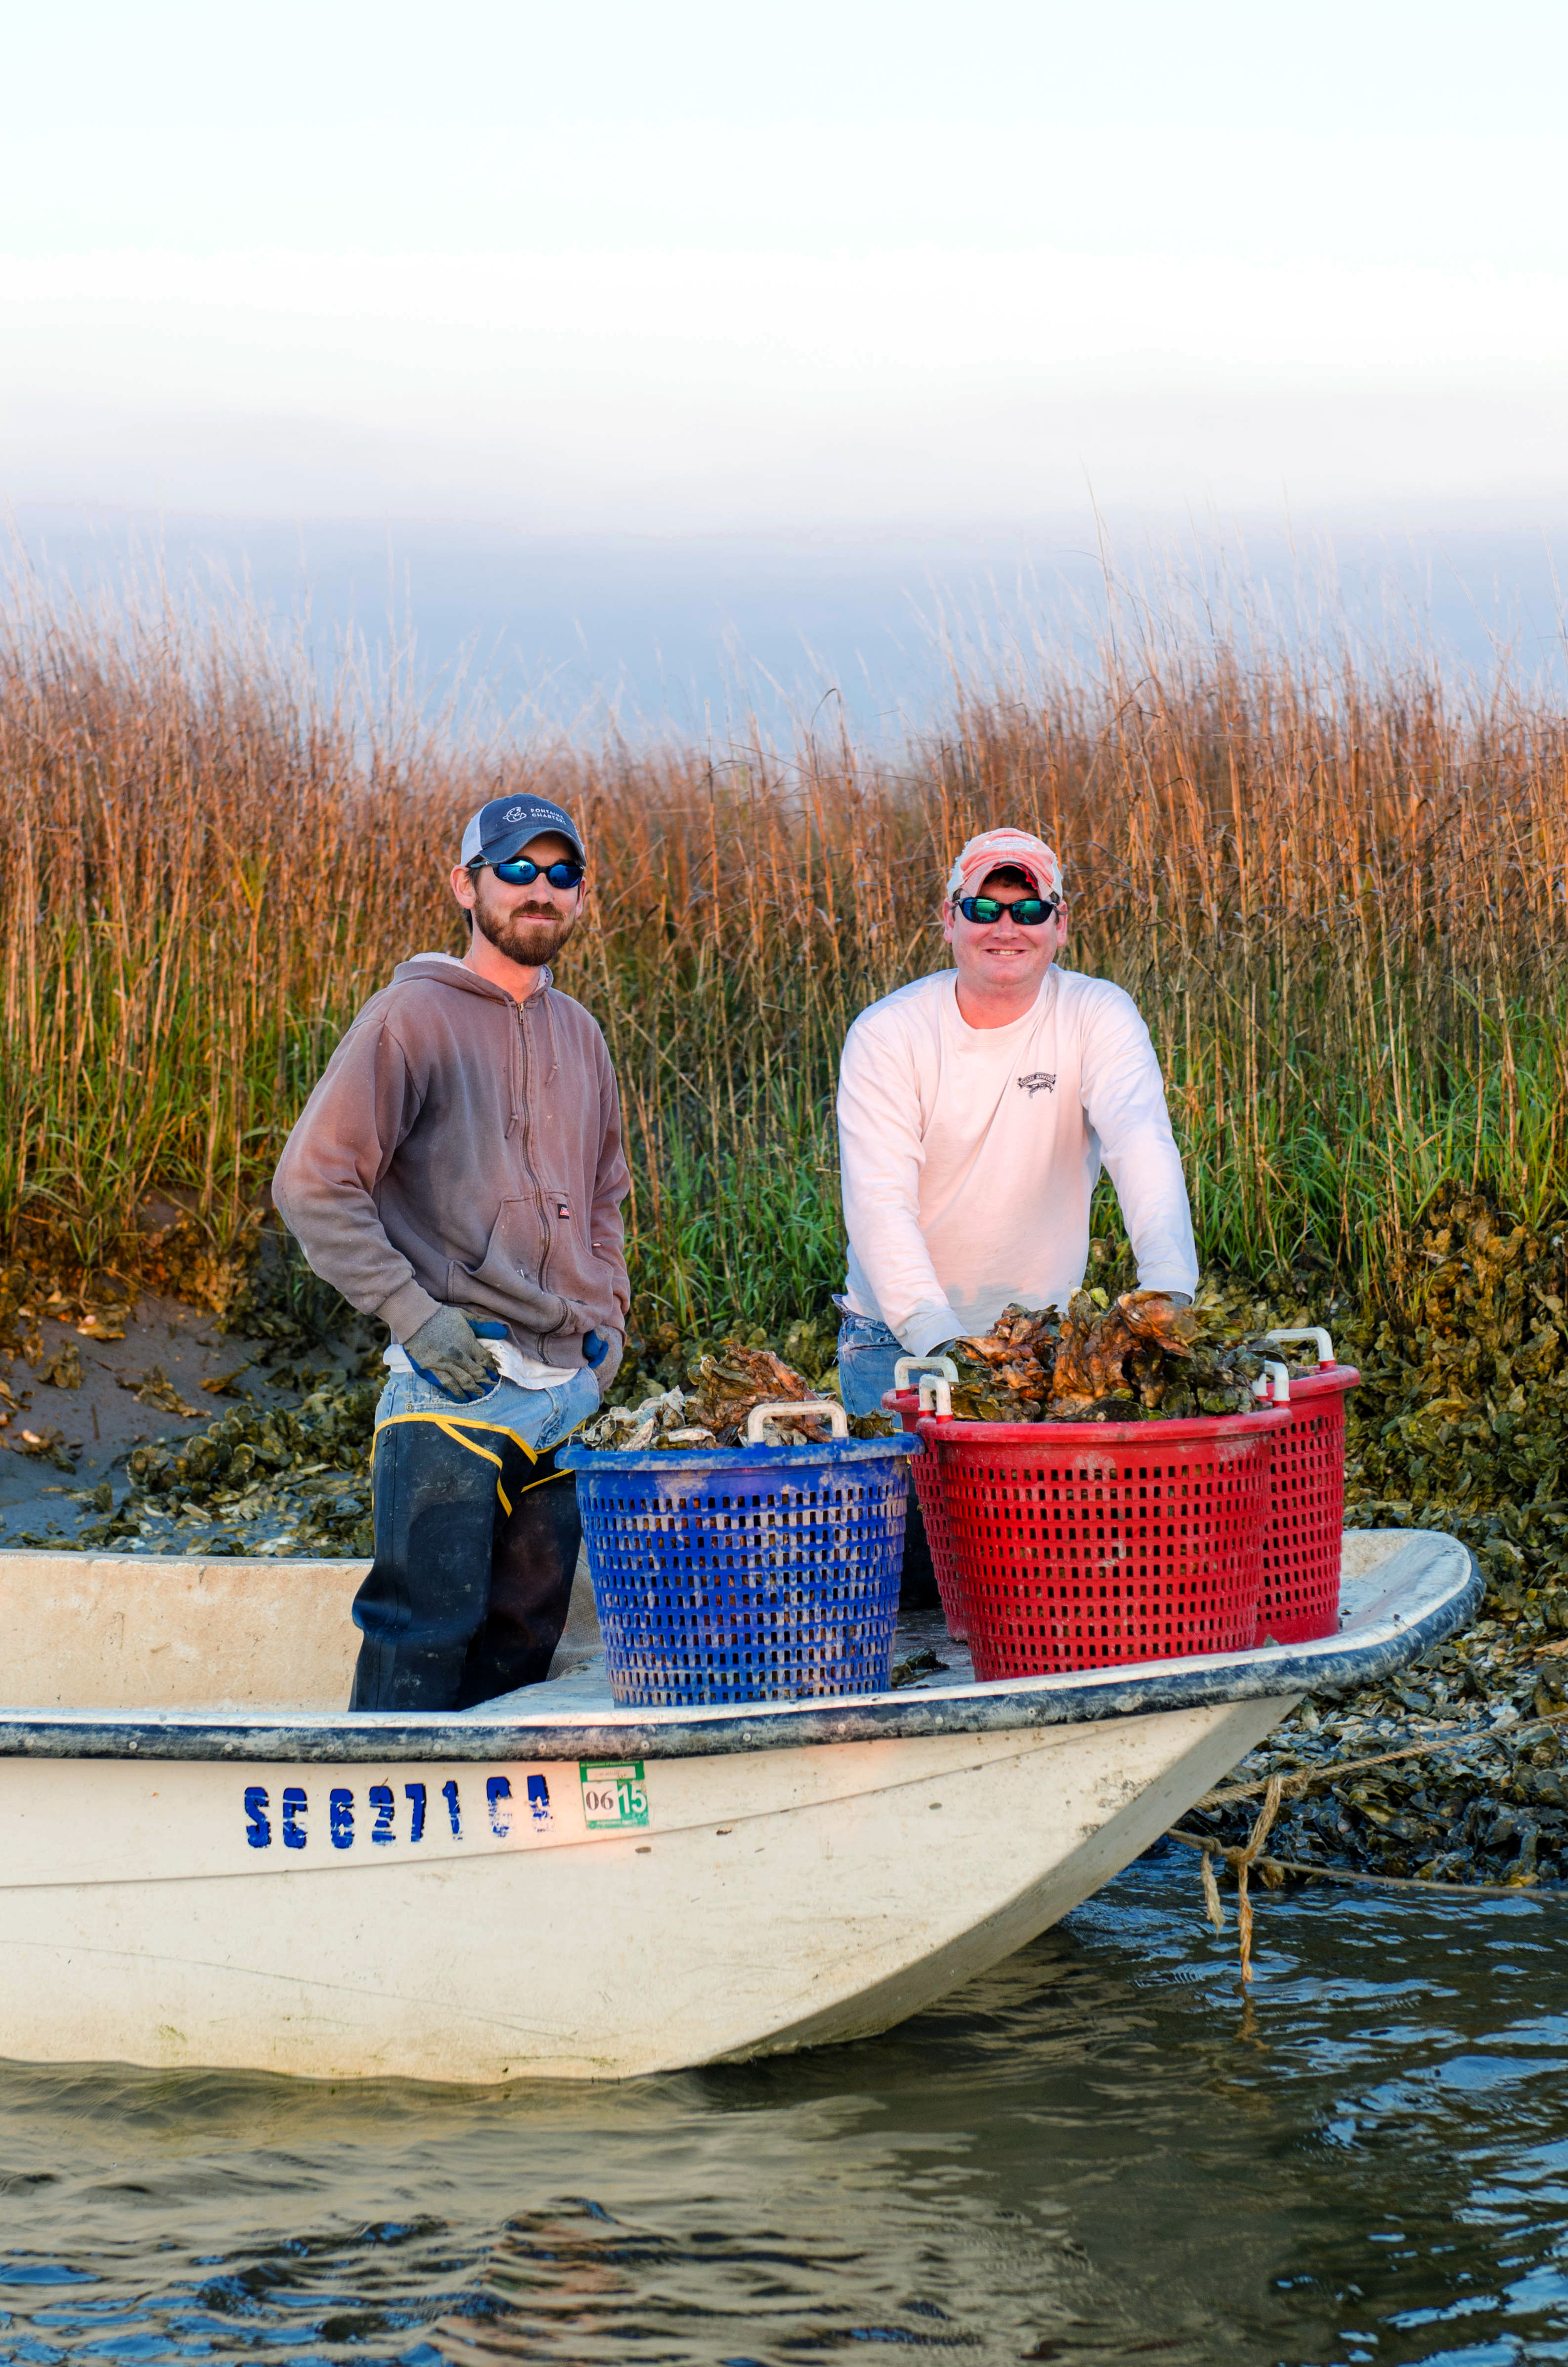 Jimmy Skinner & Ashley Fontaine collecting oysters in the waterways of Edisto Island.